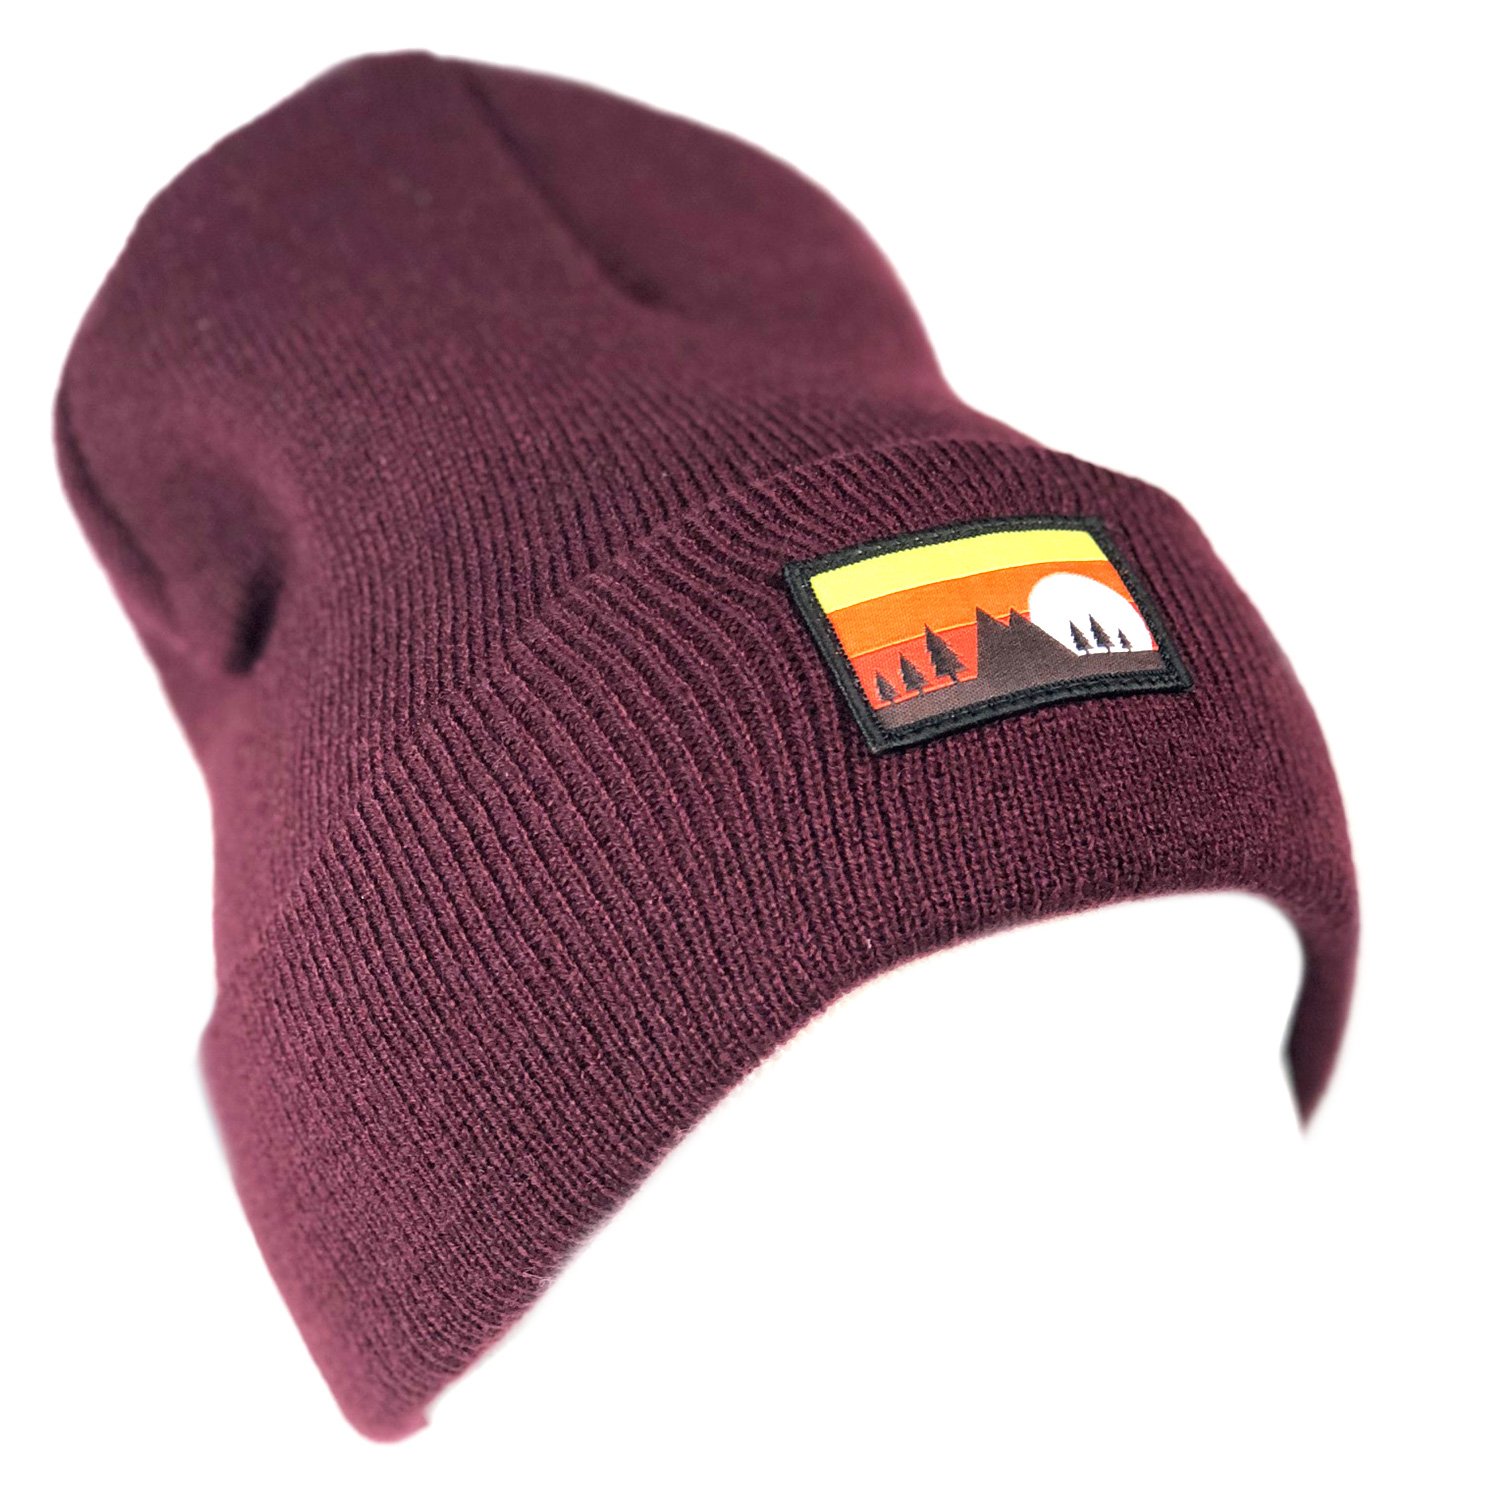 2019_02.05_Beanies_MountainScapeRibbed_Maroon_Front